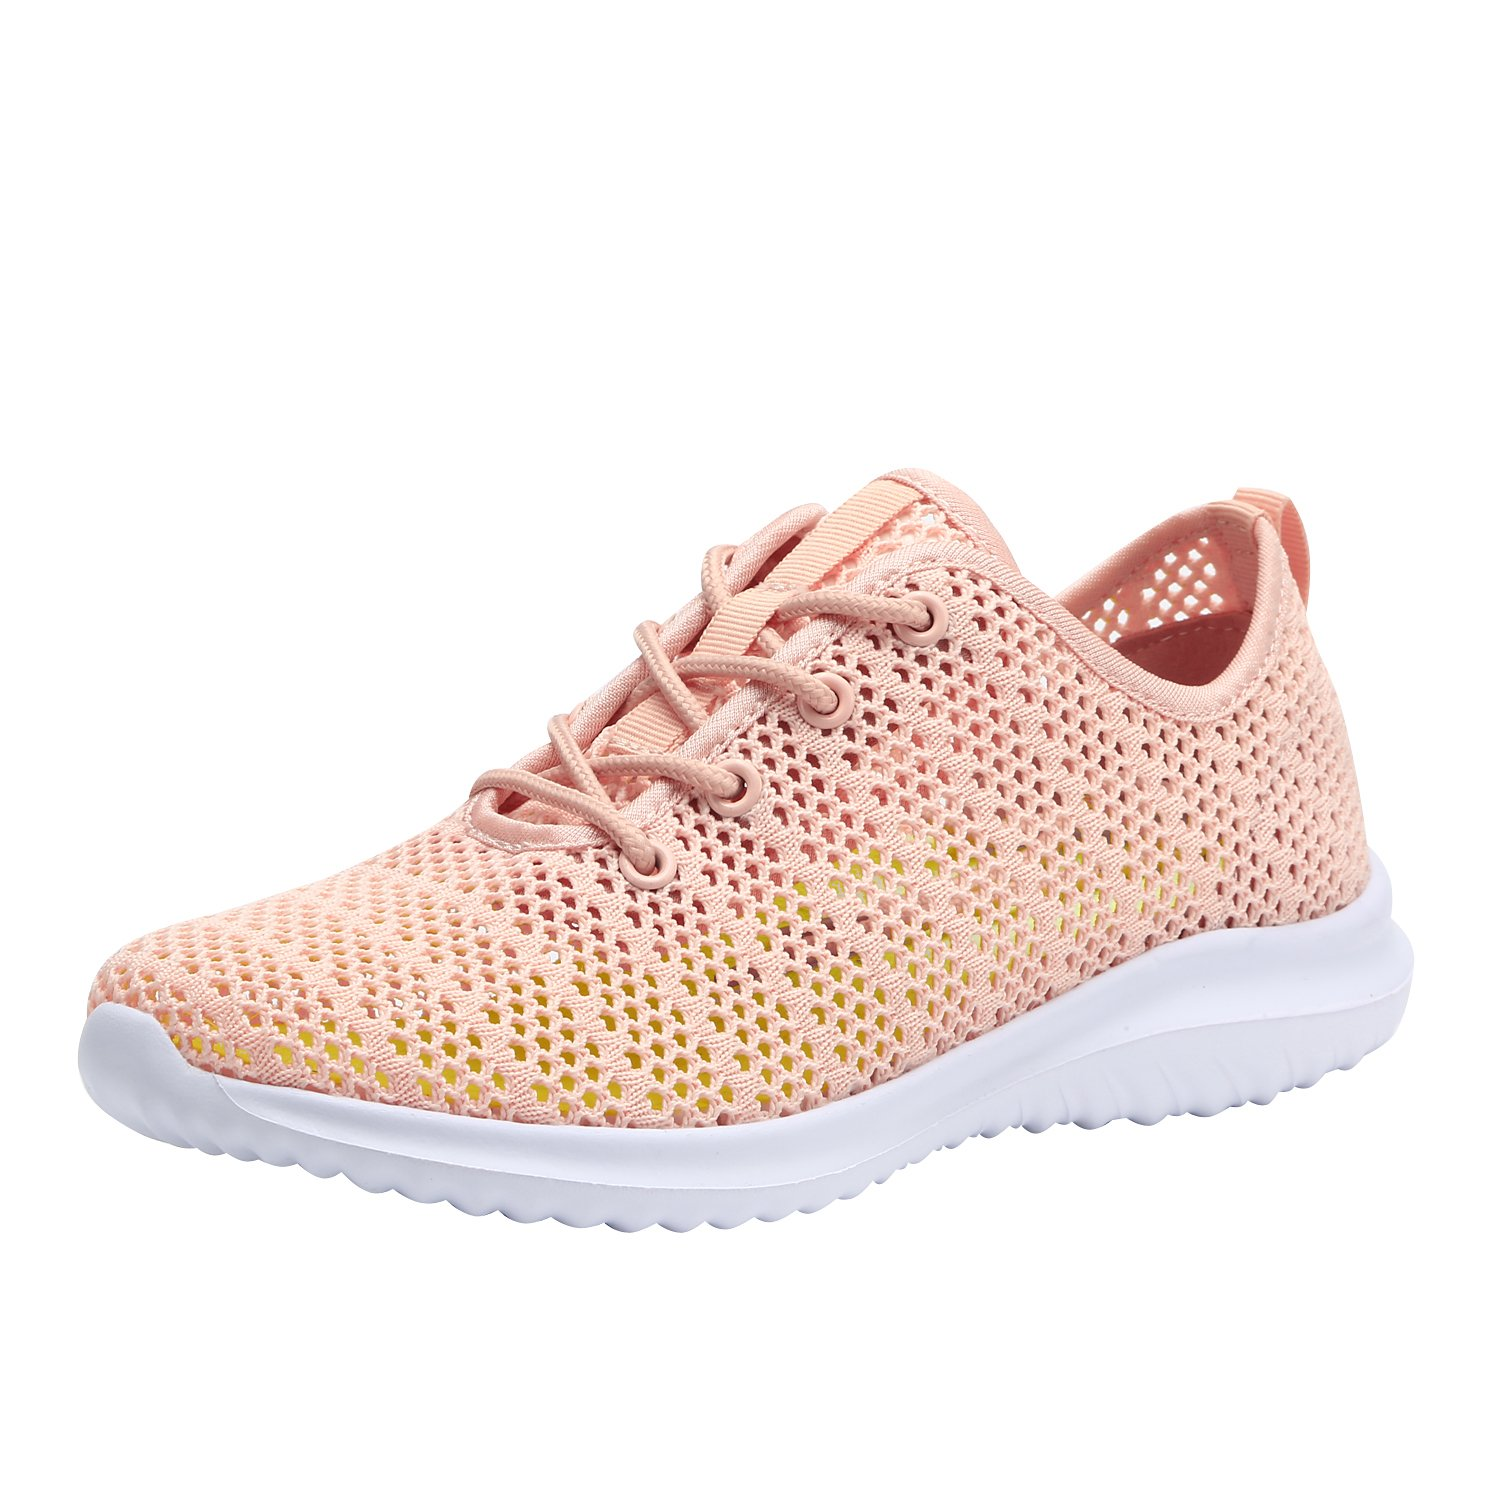 Women's Fashion Sneakers Casual Sport Shoes (8.5 B(M) US, Coral-6)